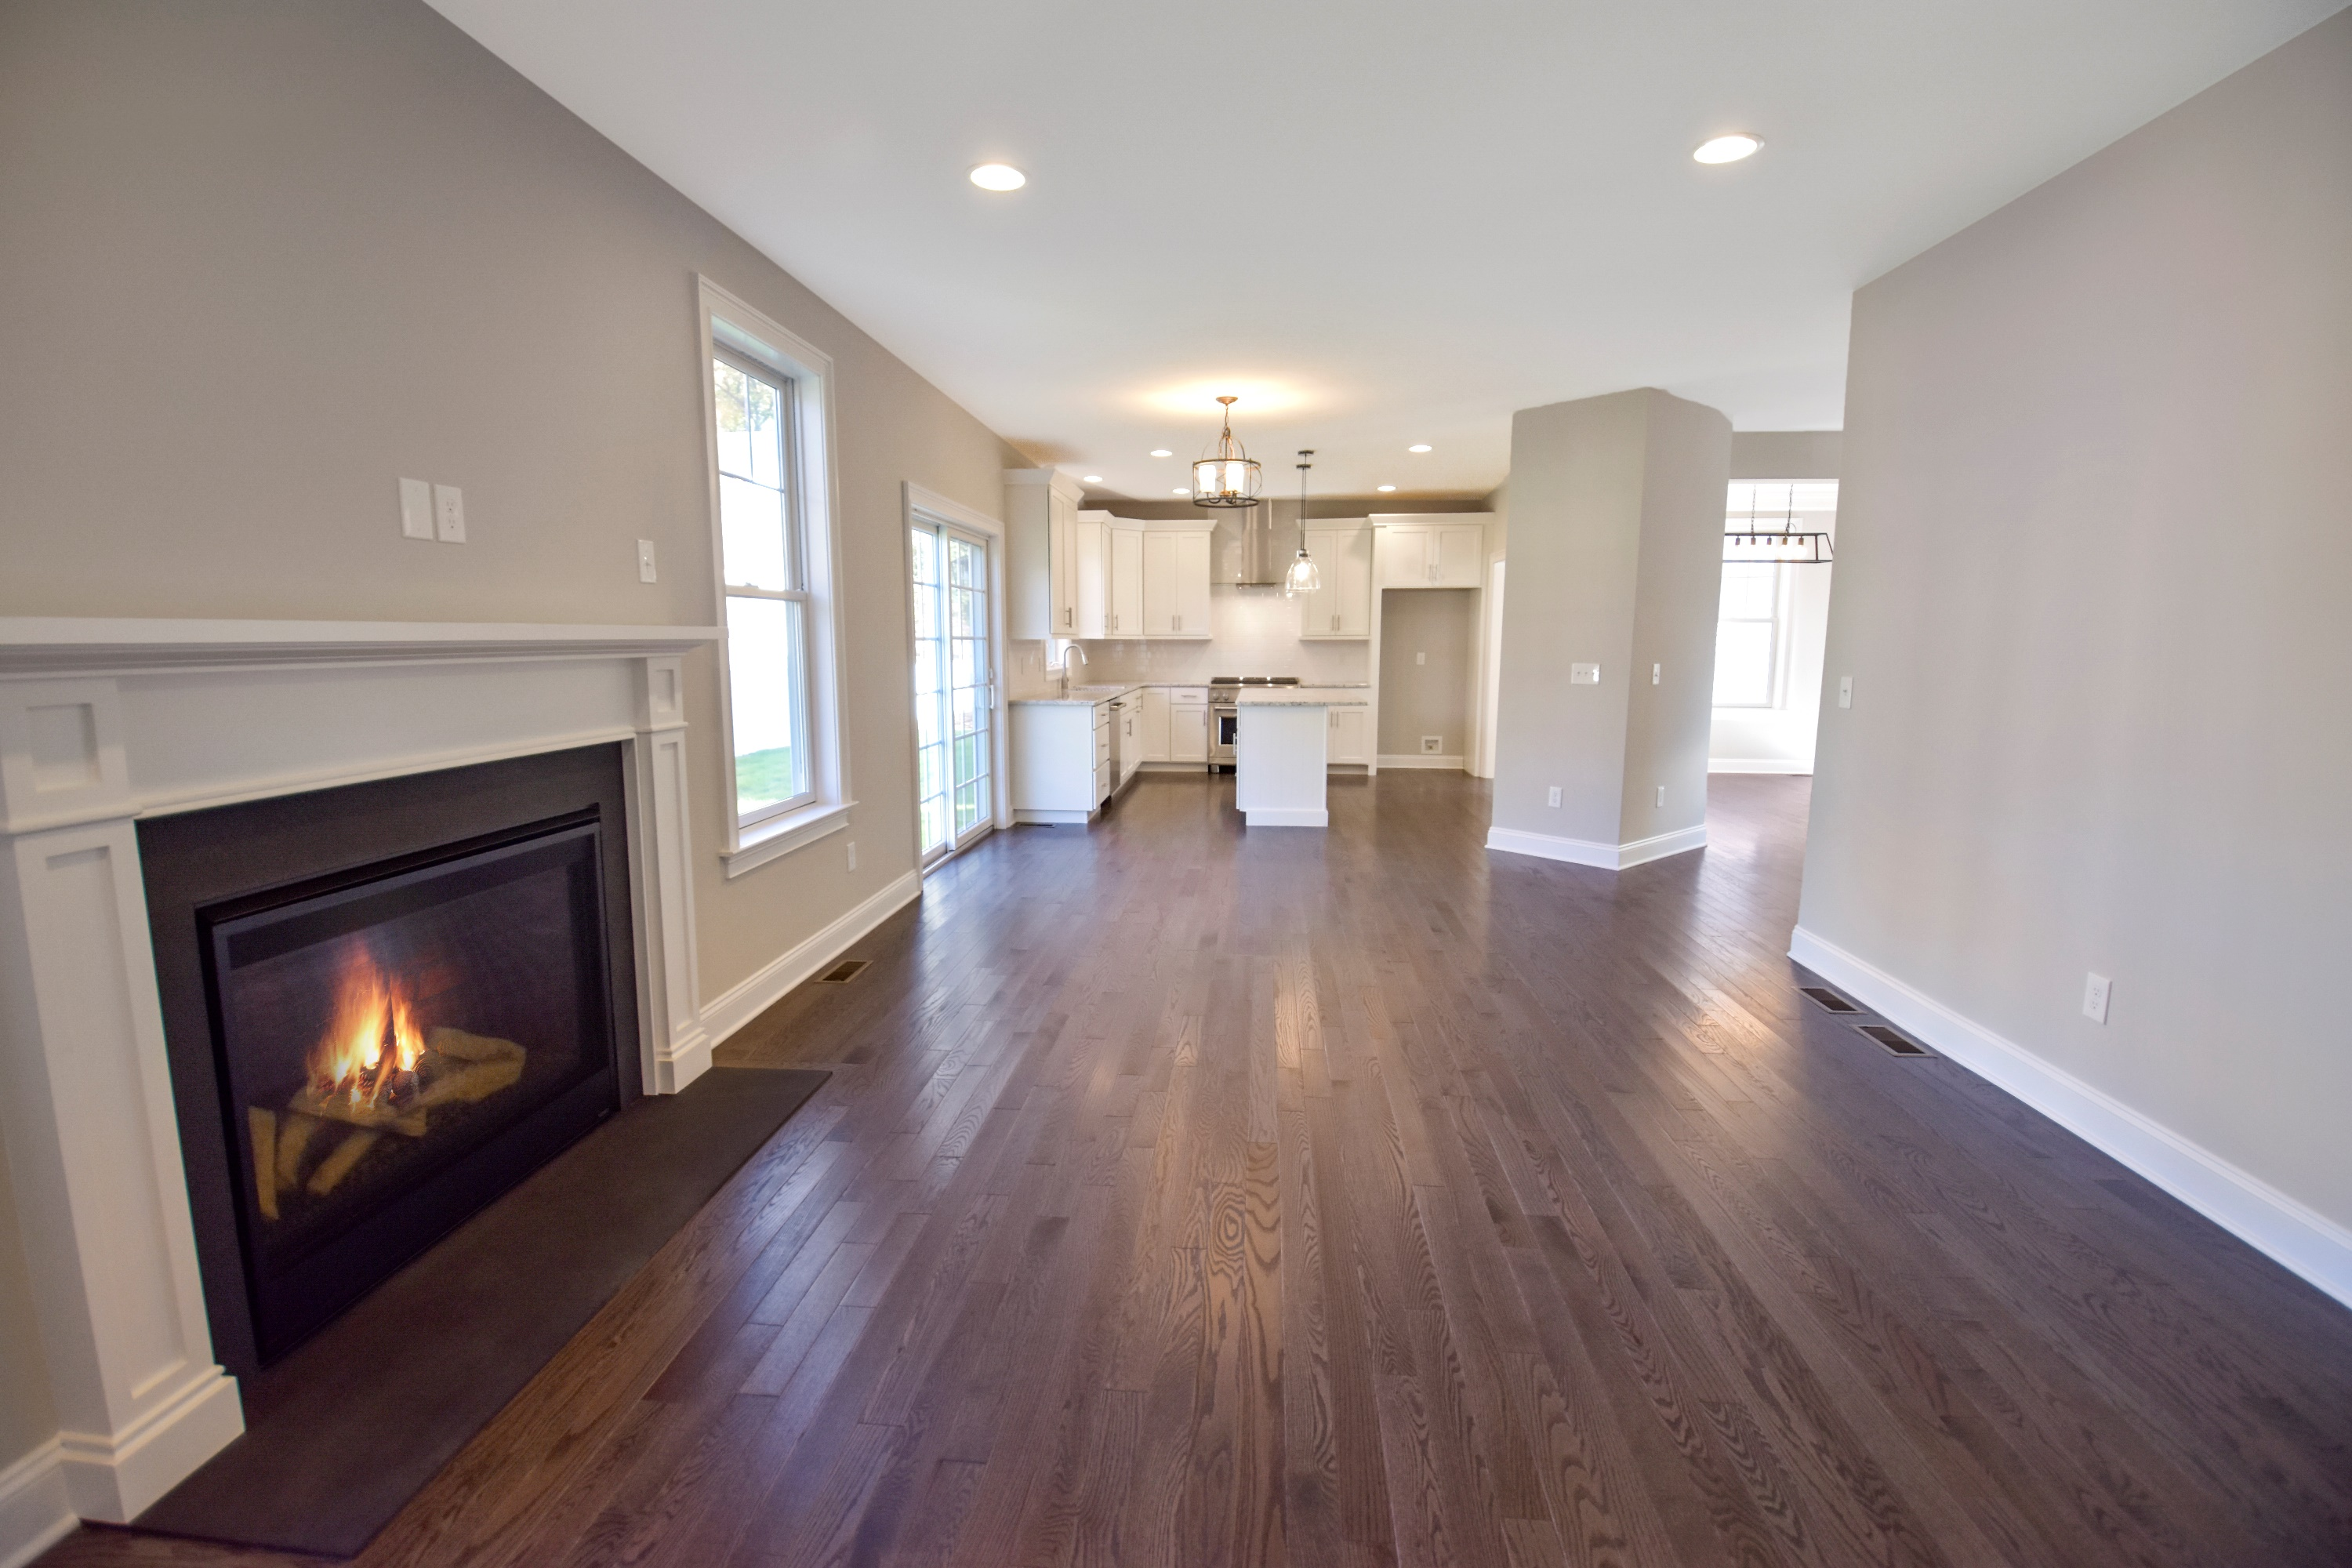 Country Classics at Scotch Plains 603 Taylors Way Family Room Kitchen